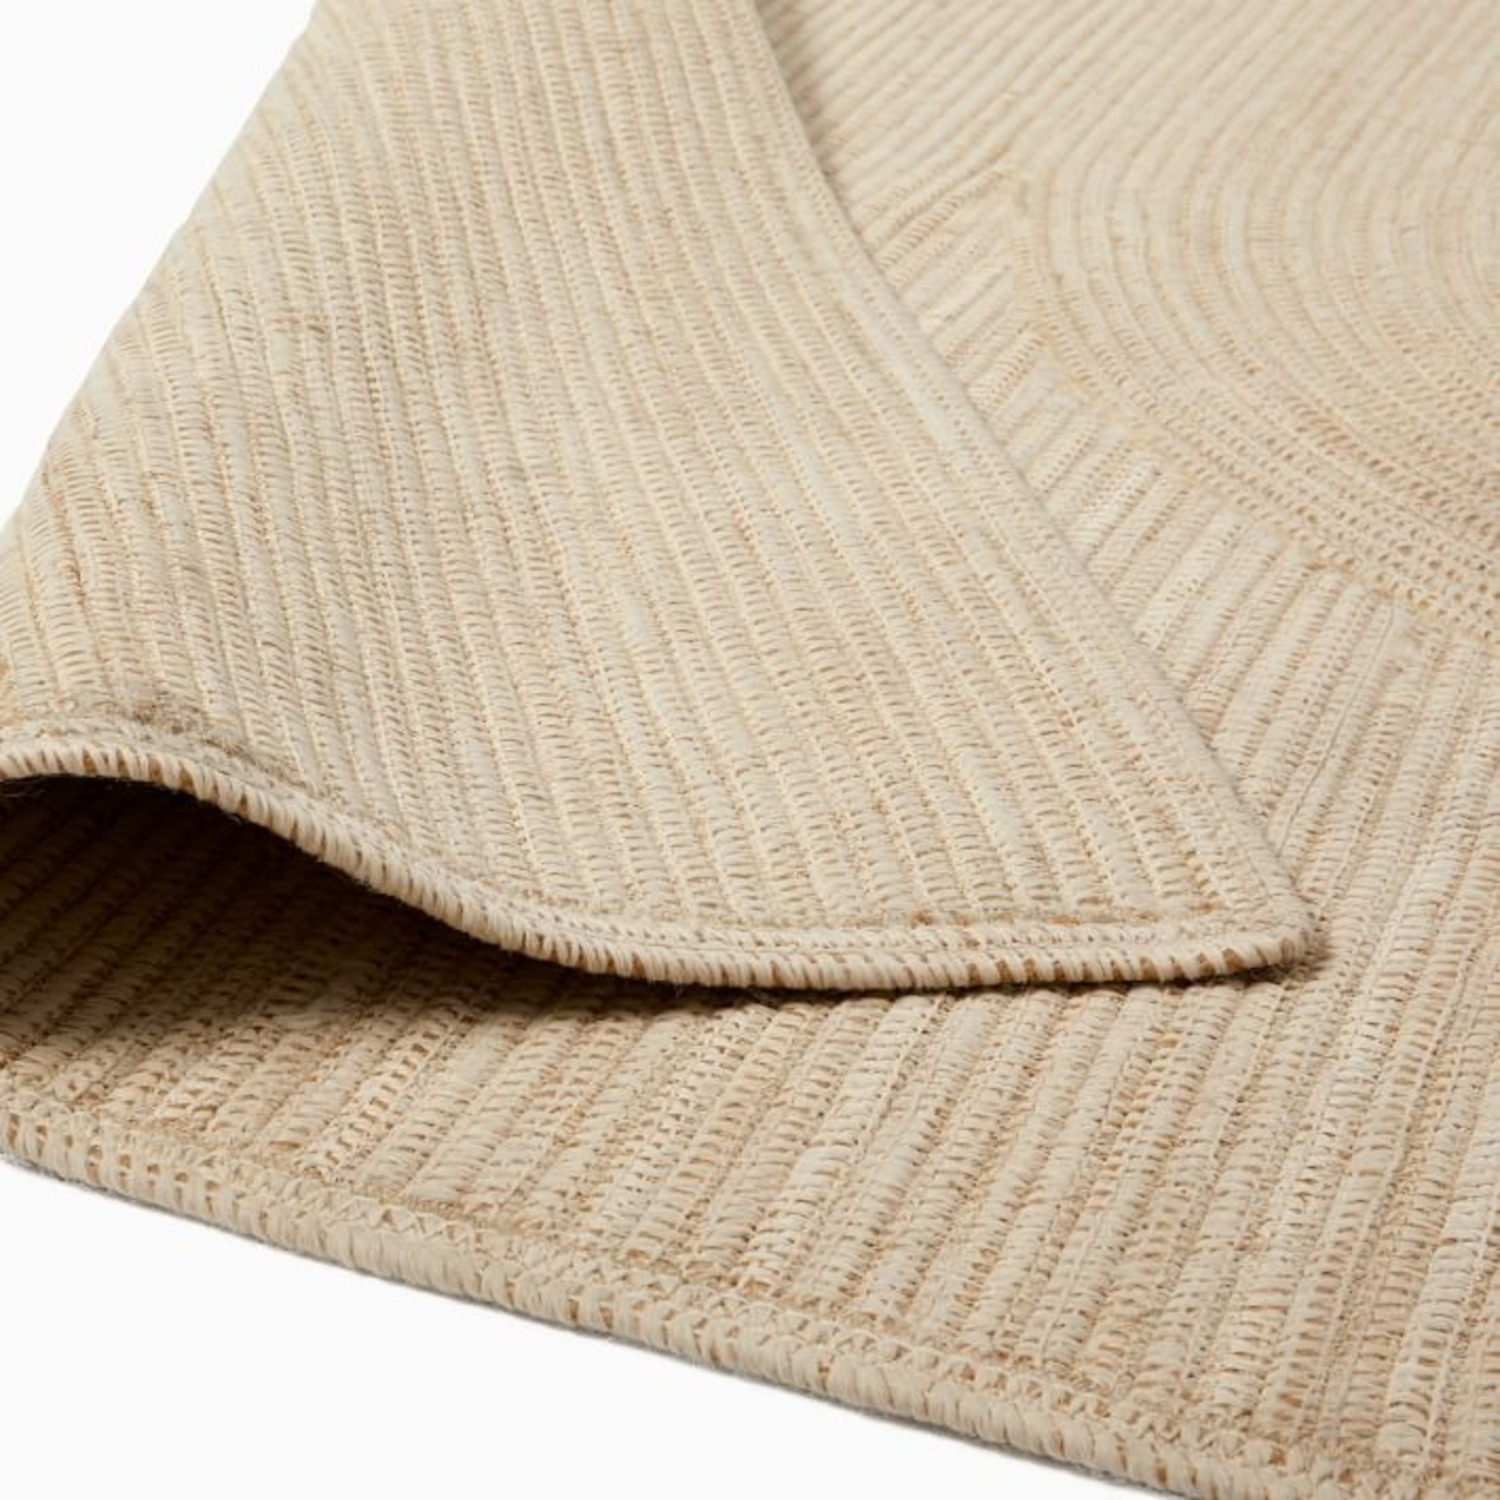 West Elm Graphic Arches All Weather Rug - image-2